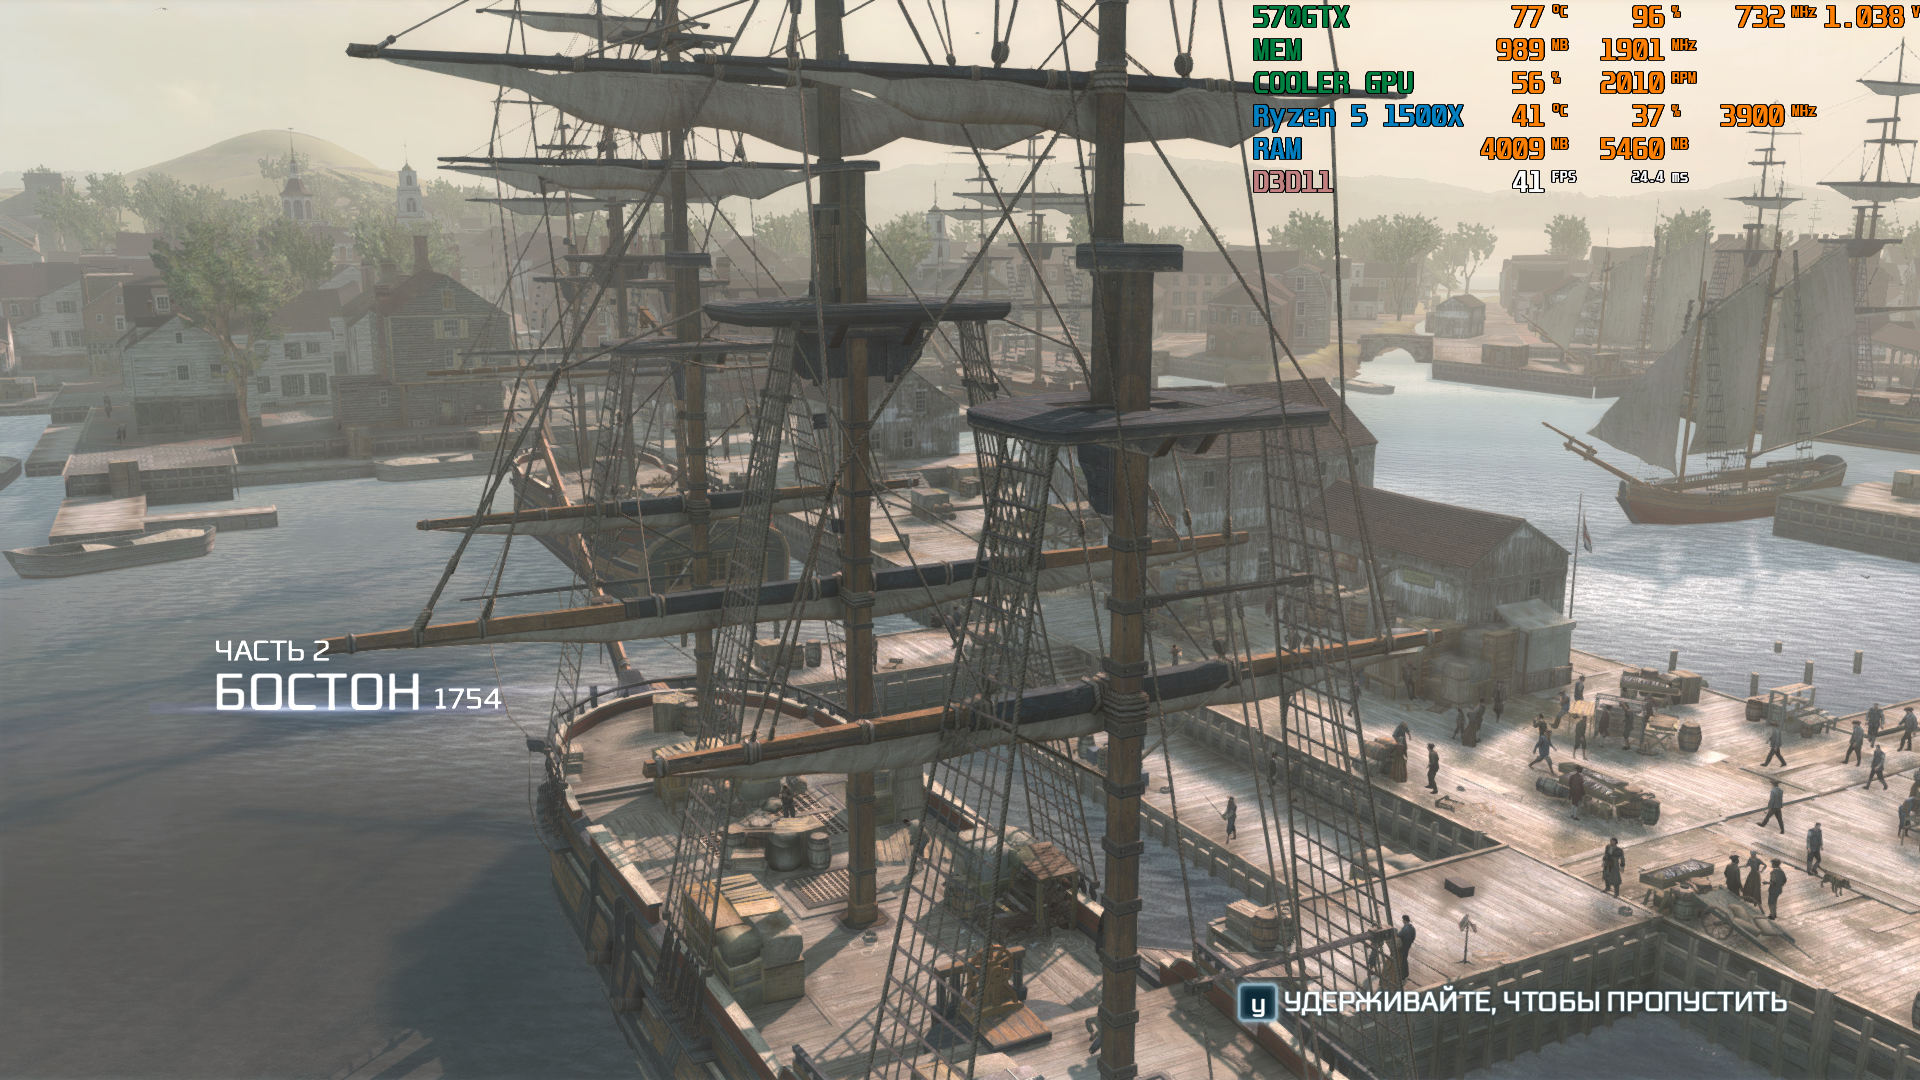 AC3SP_2018_09_21_22_48_30_301.png - Assassin's Creed 3